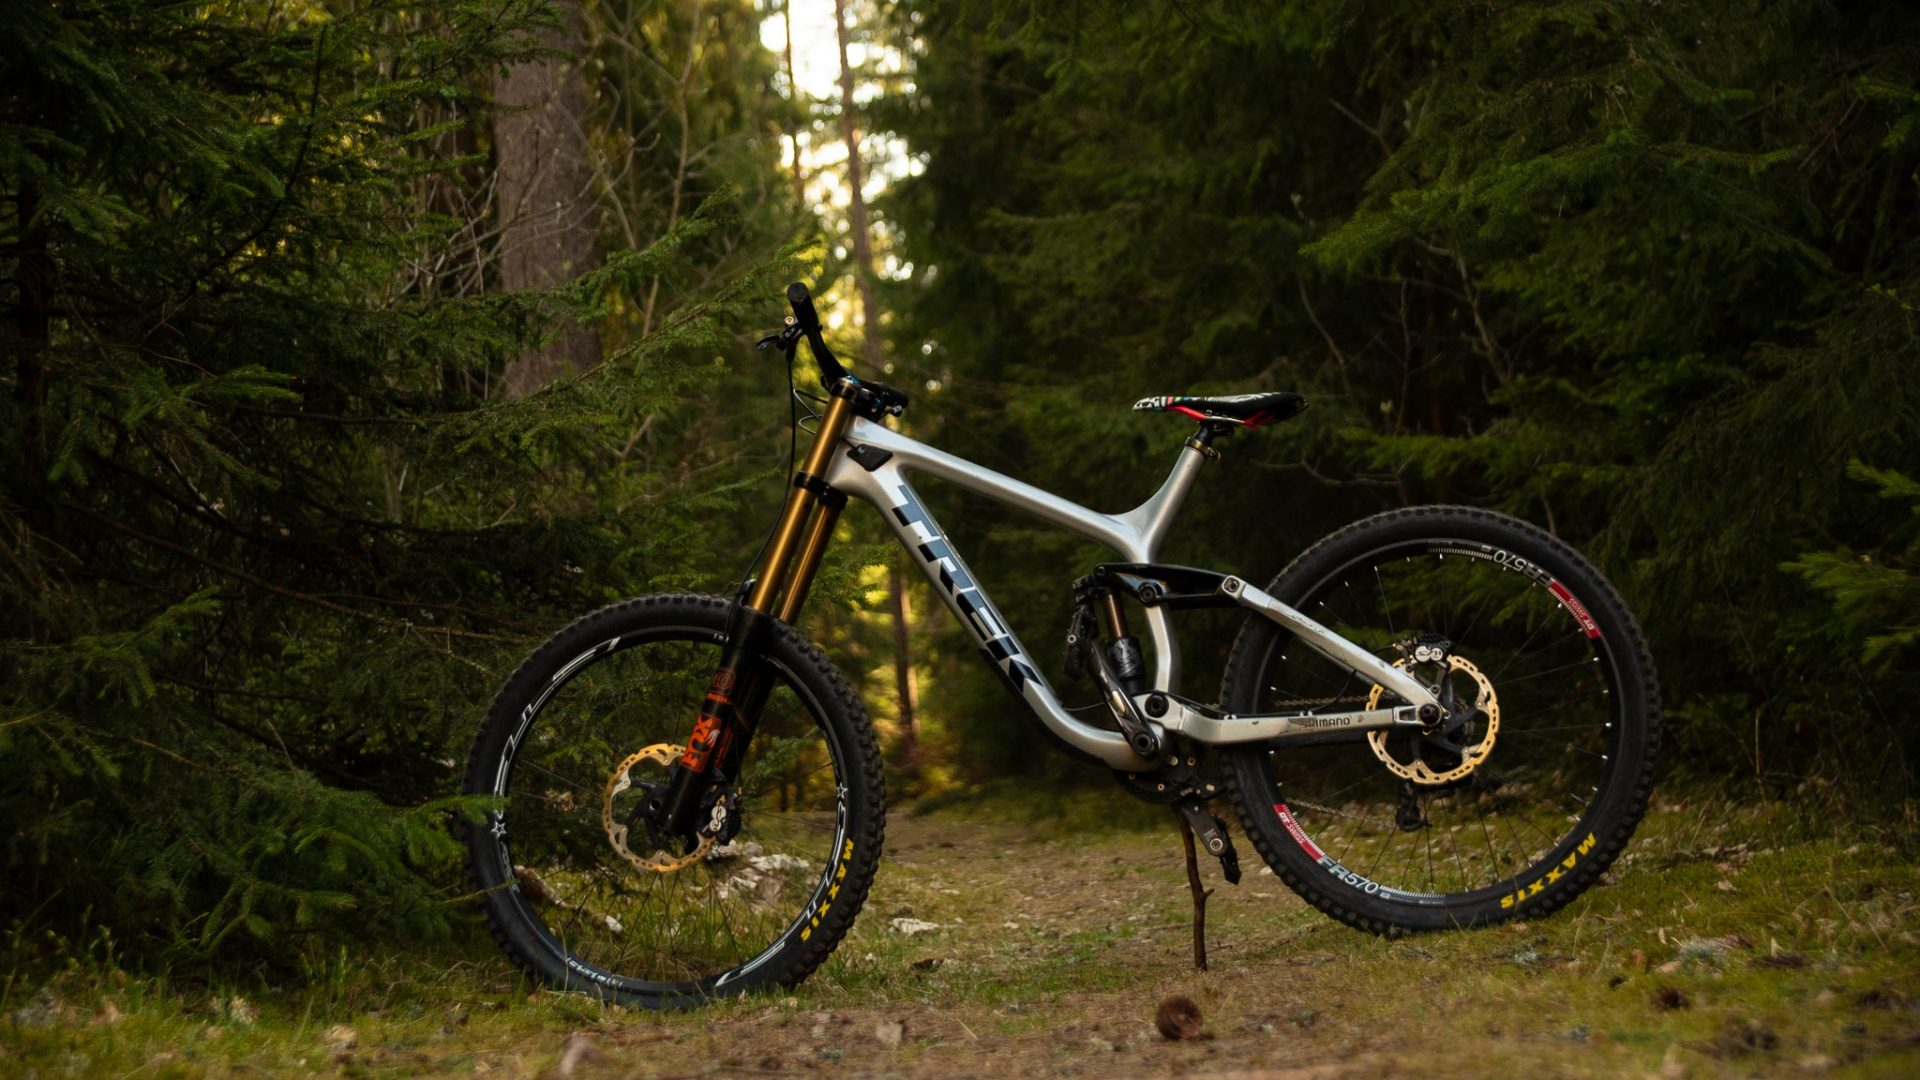 Teambike 2020 Thilo Egert Trek session 9.9 biking is awesome